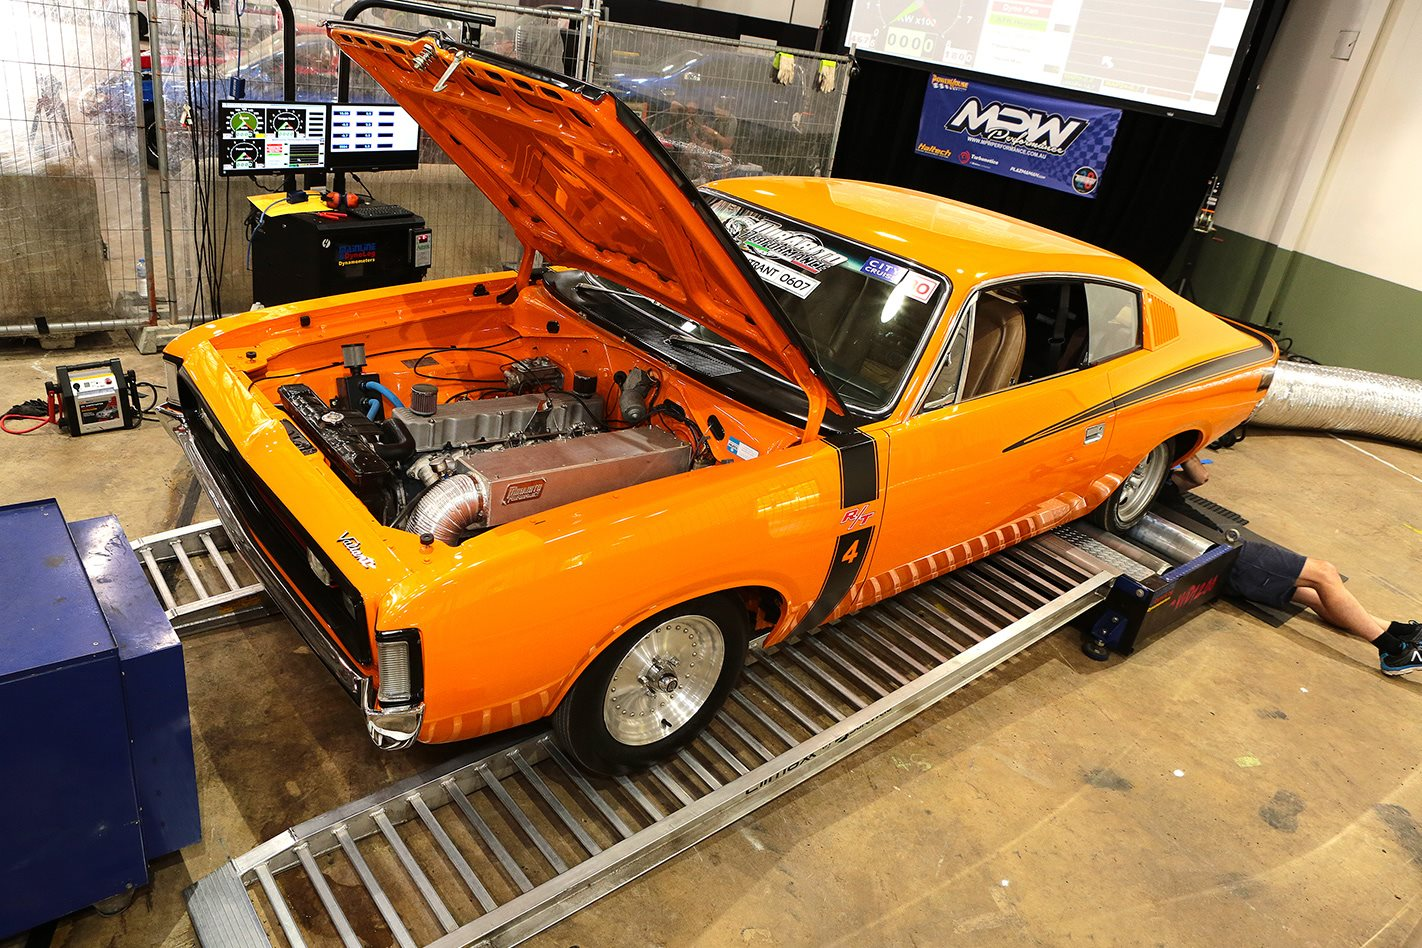 Chrysler VH Charger on the dyno